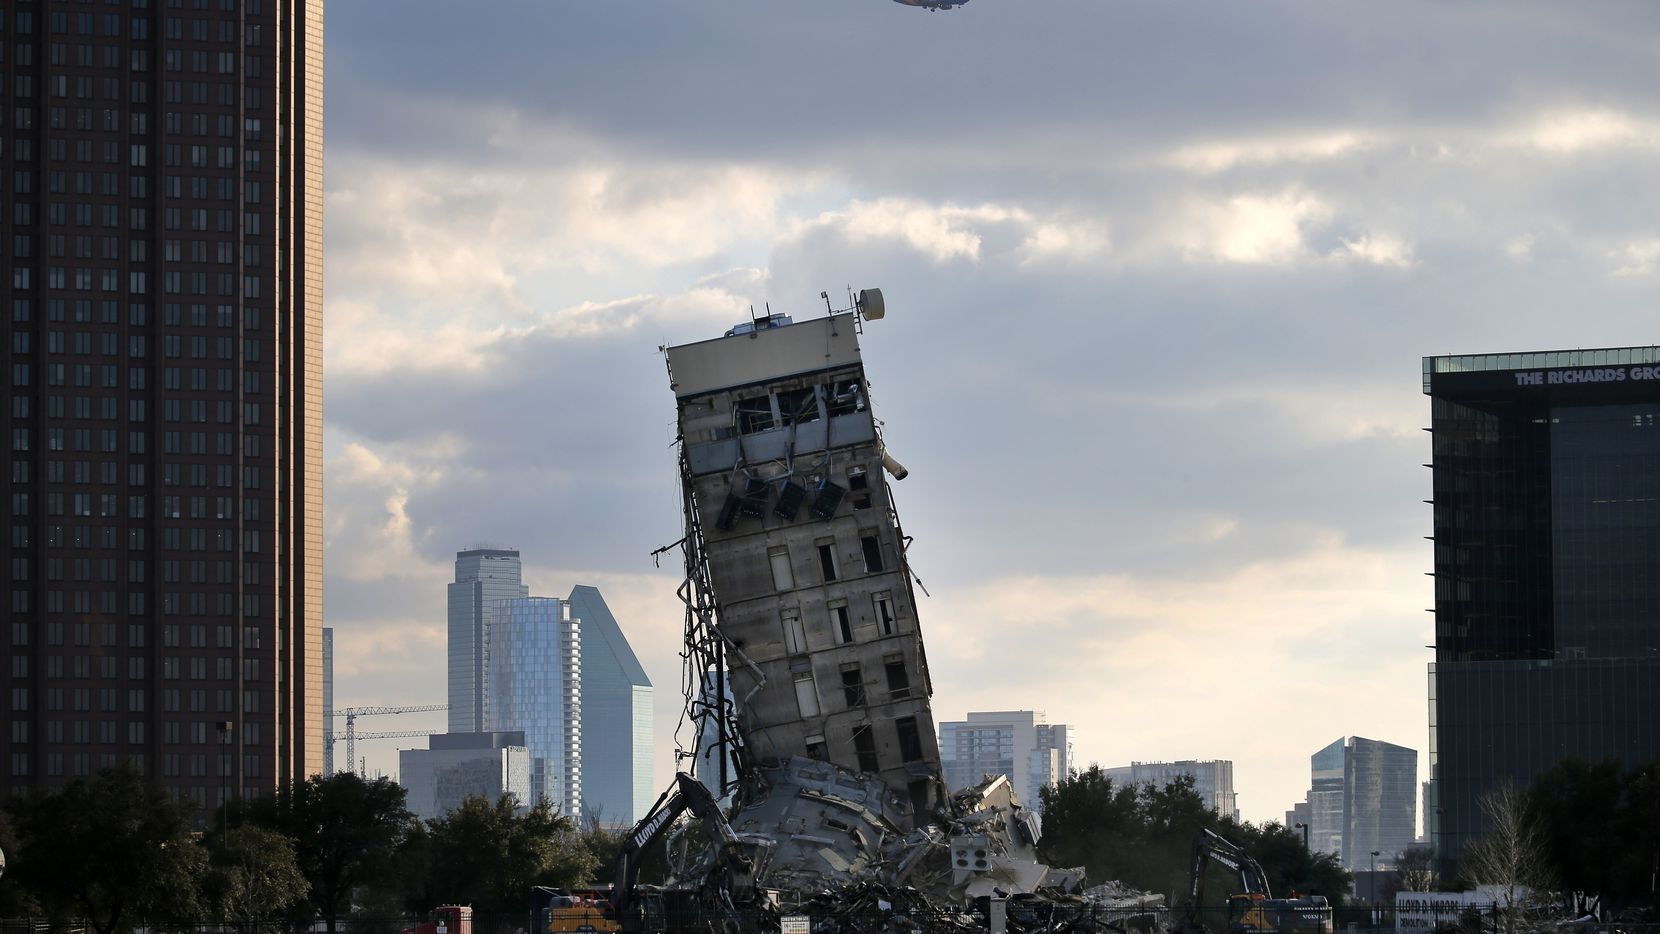 The popularly dubbed Leaning Tower of Dallas stood for 15 days before succumbing to the wrecking ball.